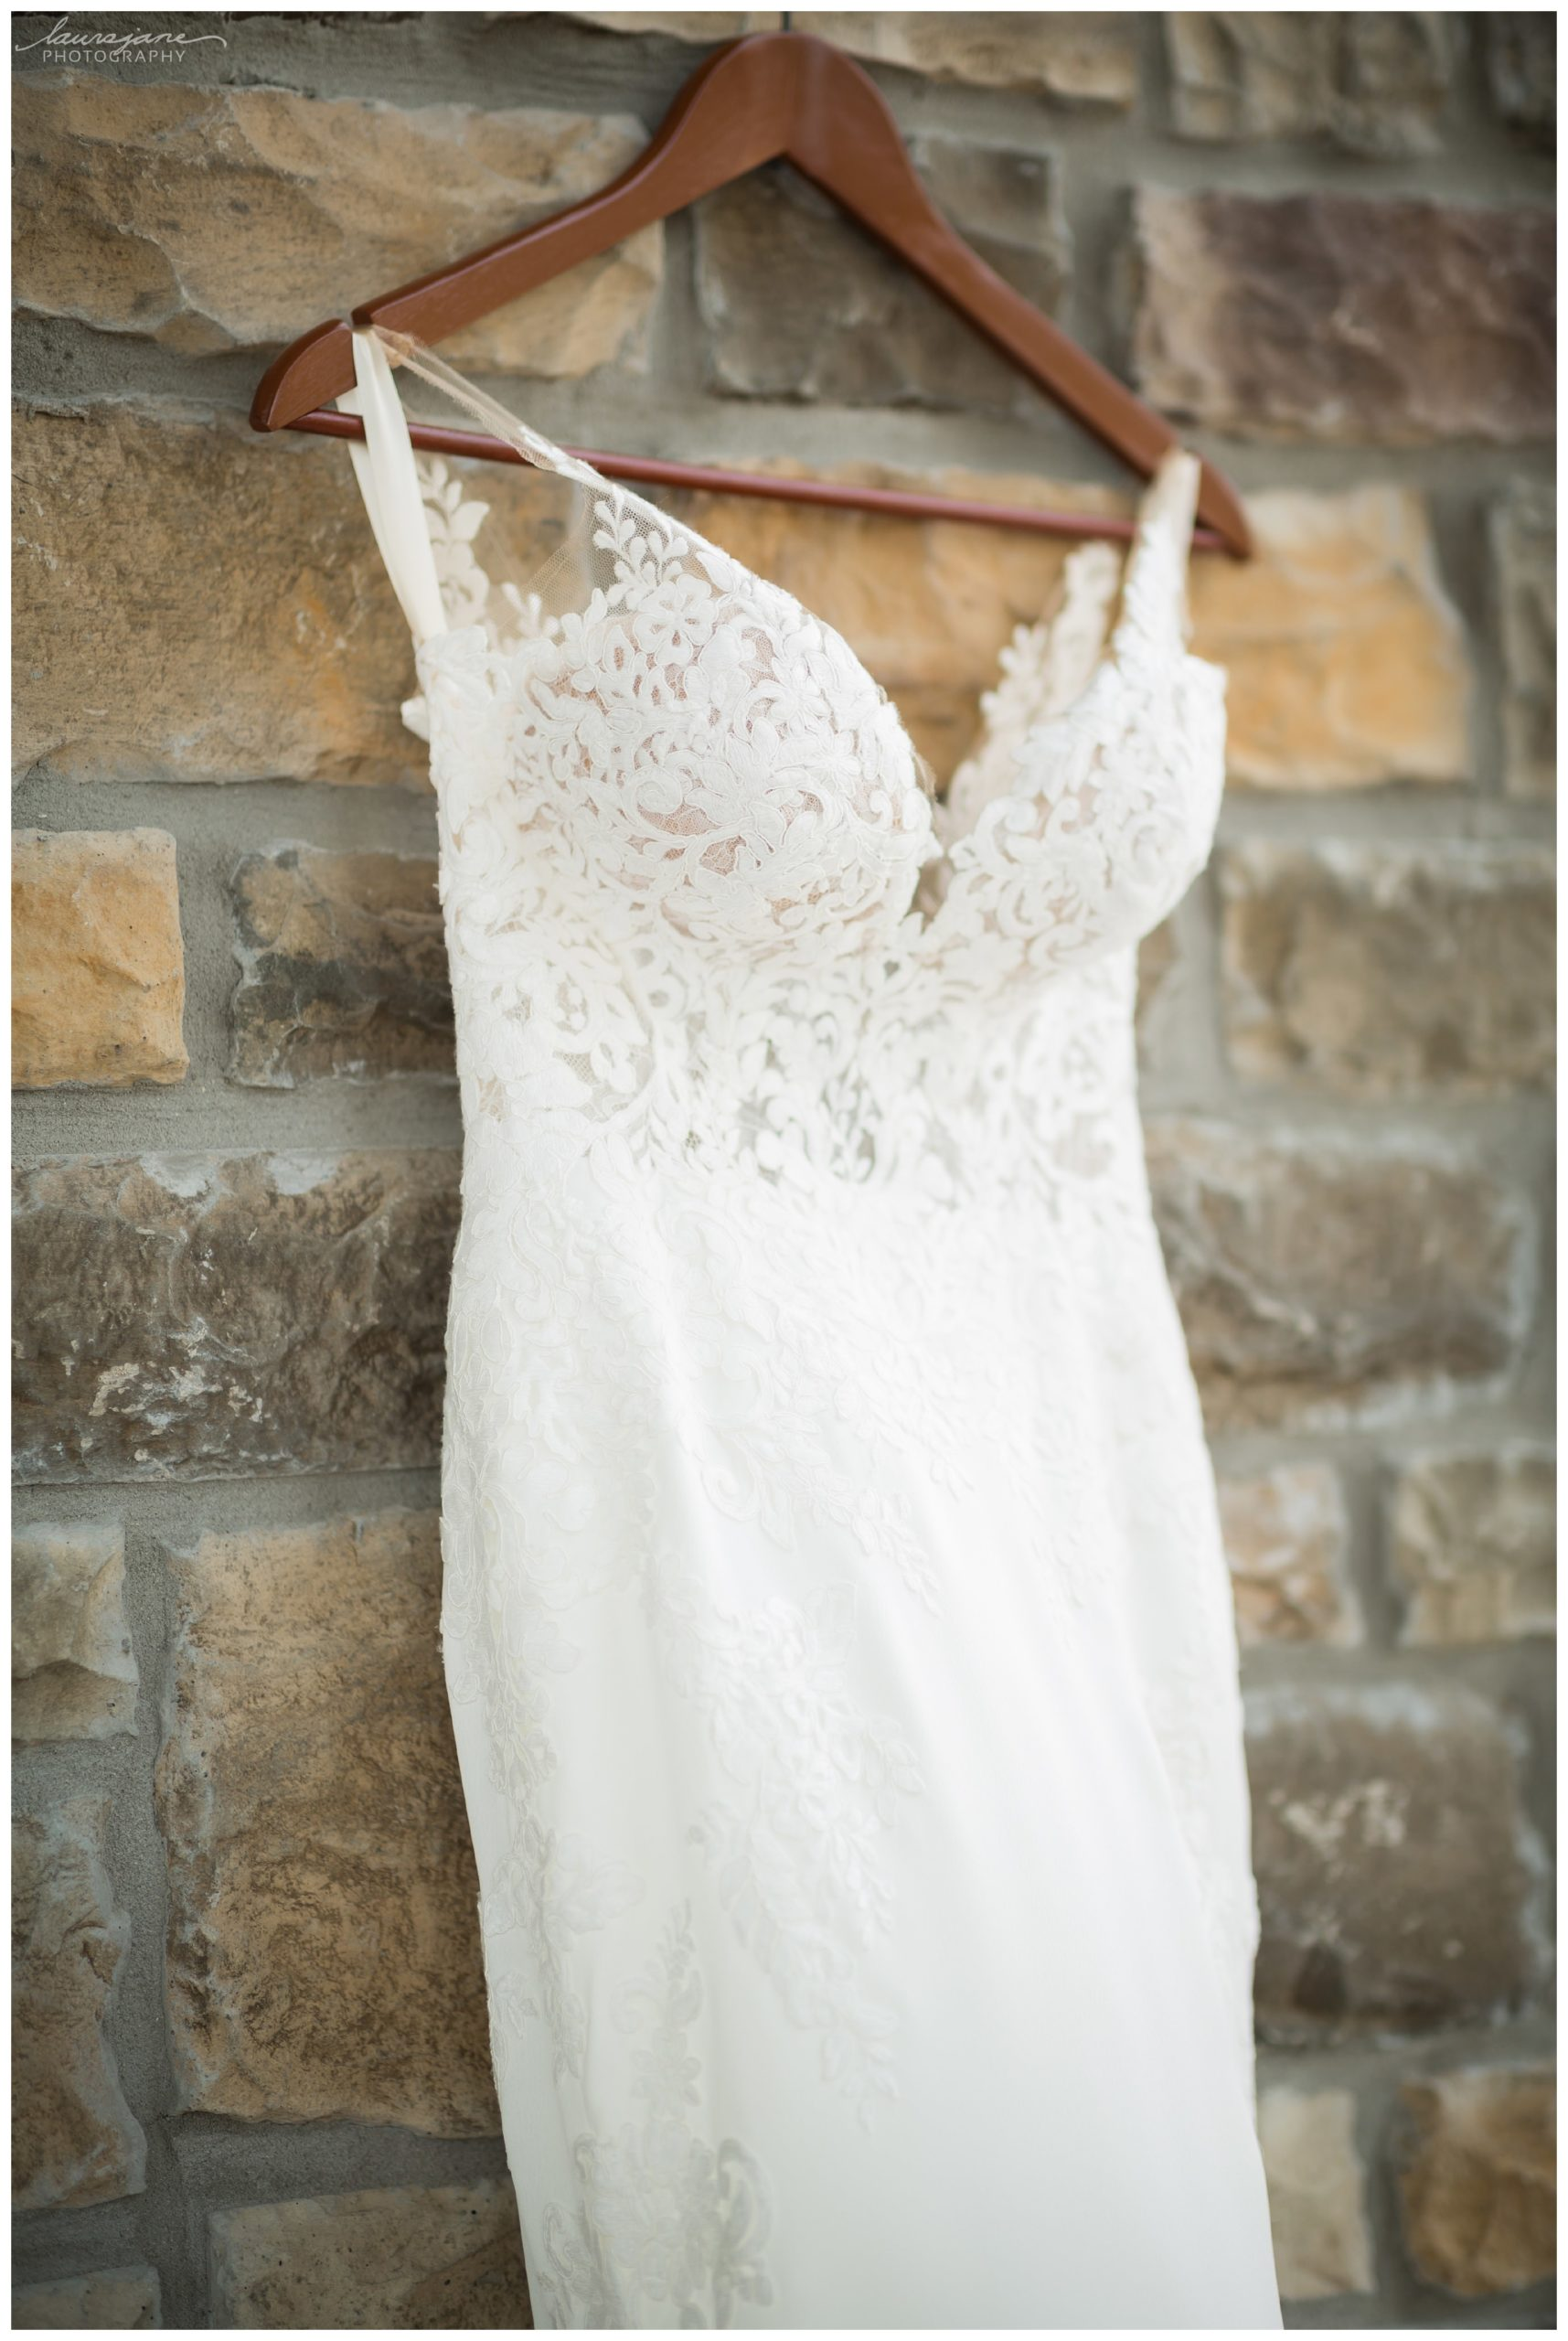 Simple Photo of Wedding Dress